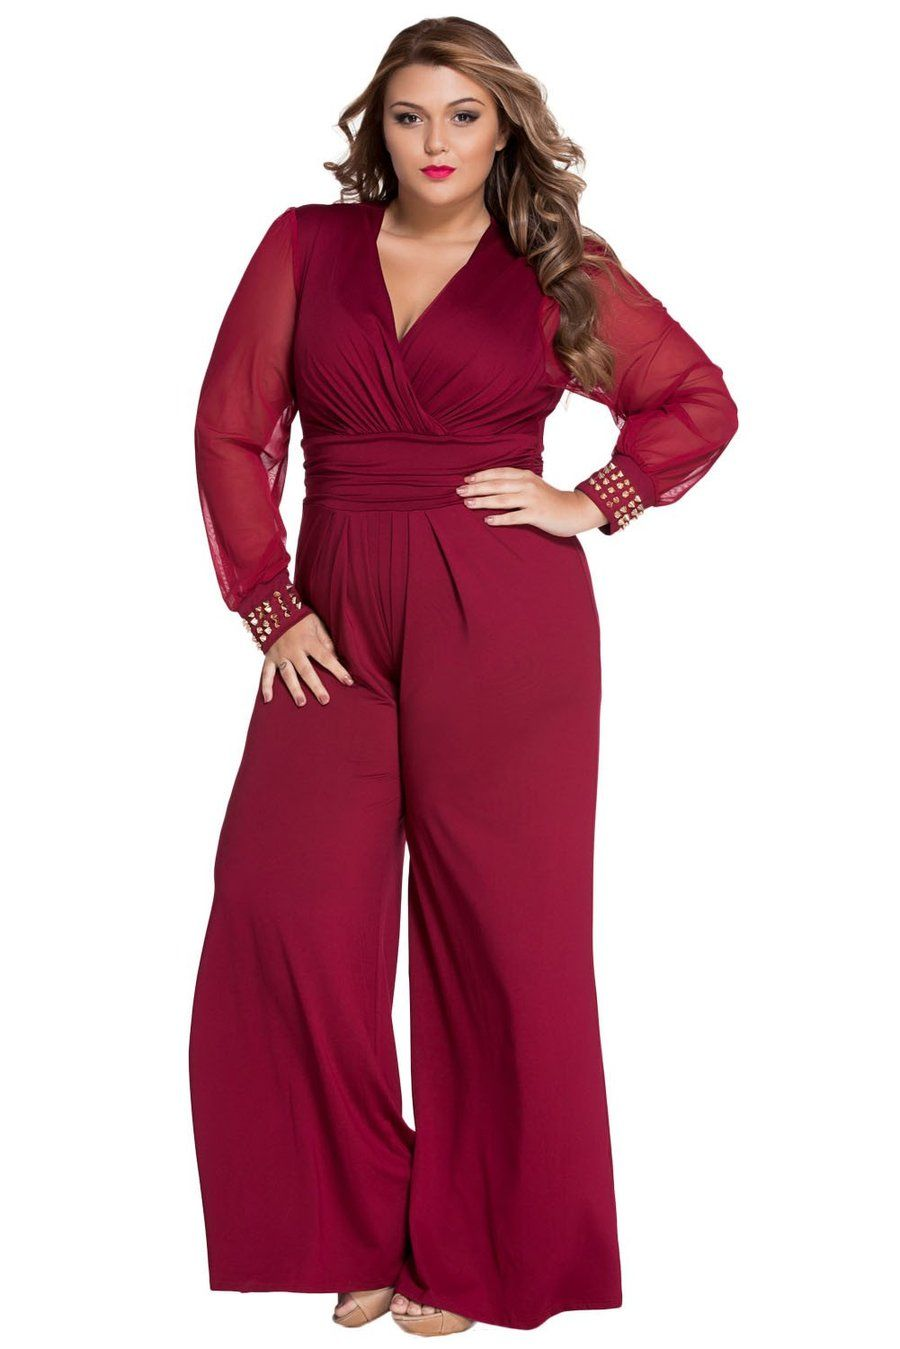 jumpsuits for women